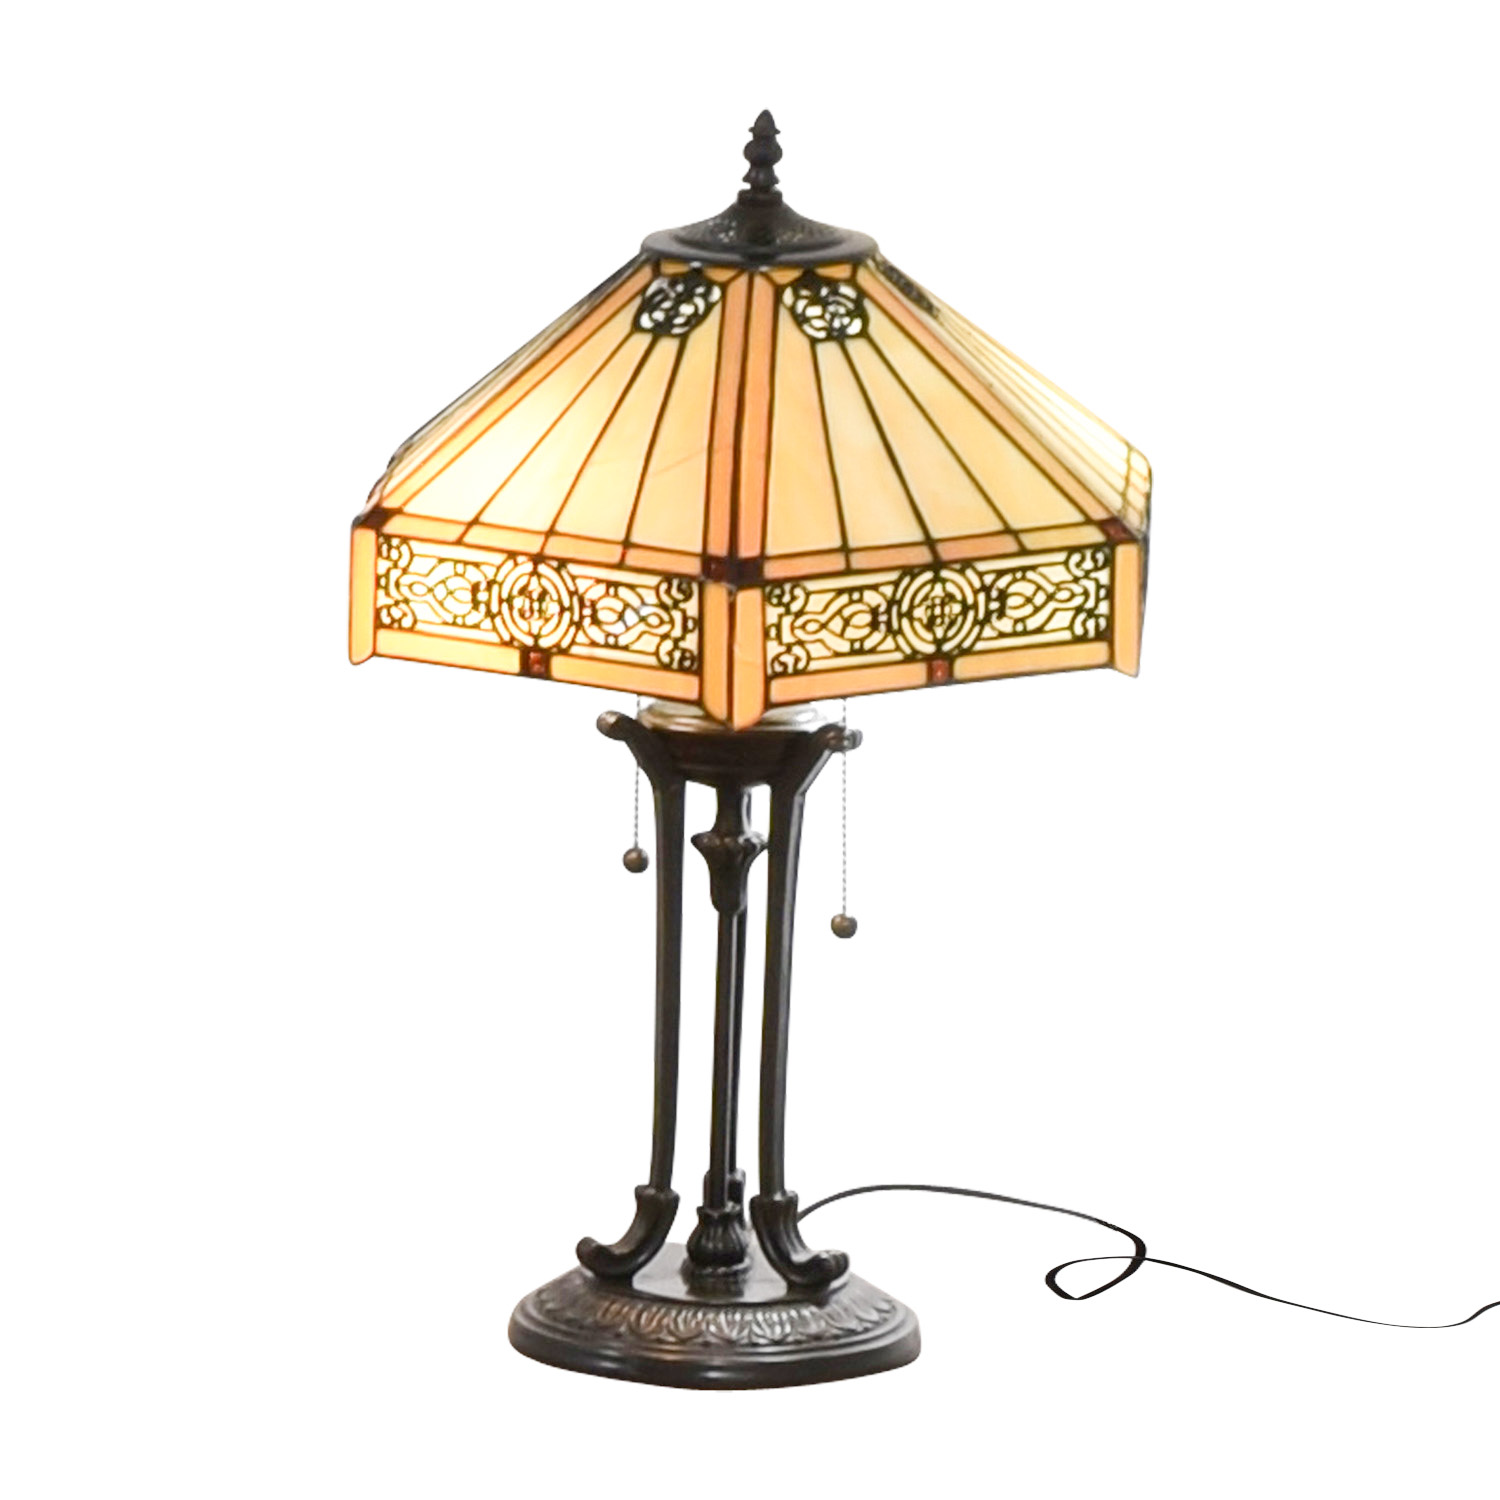 86 off stained glass tiffany style side table lamp decor Decorating end tables without lamps